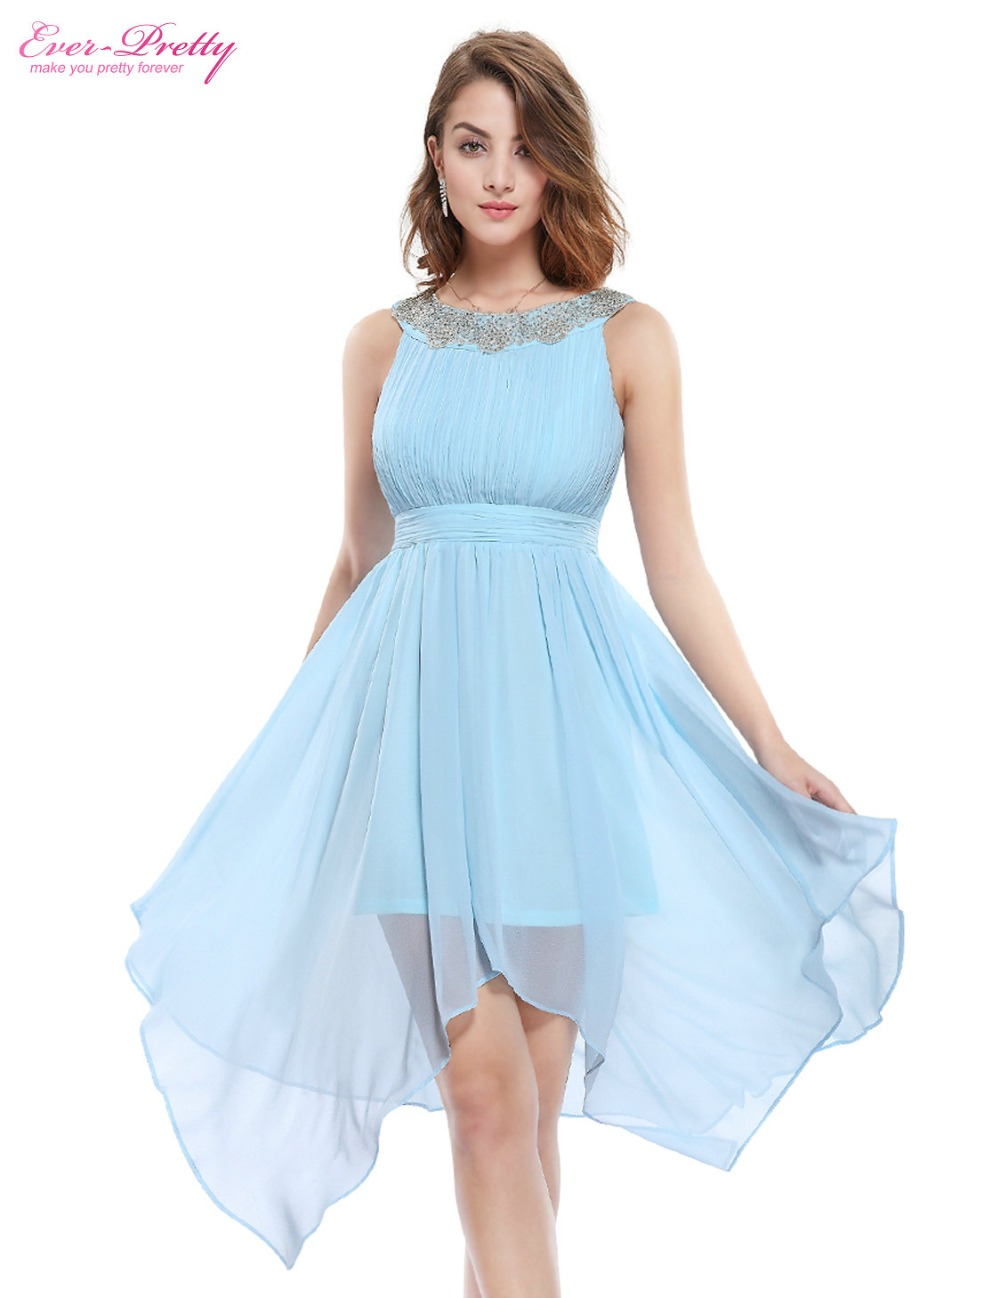 Clearance sale sexy cocktail dresses ever pretty he05002 women clearance sale sexy cocktail dresses ever pretty he05002 women round neck high low asymmetrical short cocktail dresses 2017 in cocktail dresses from ombrellifo Image collections